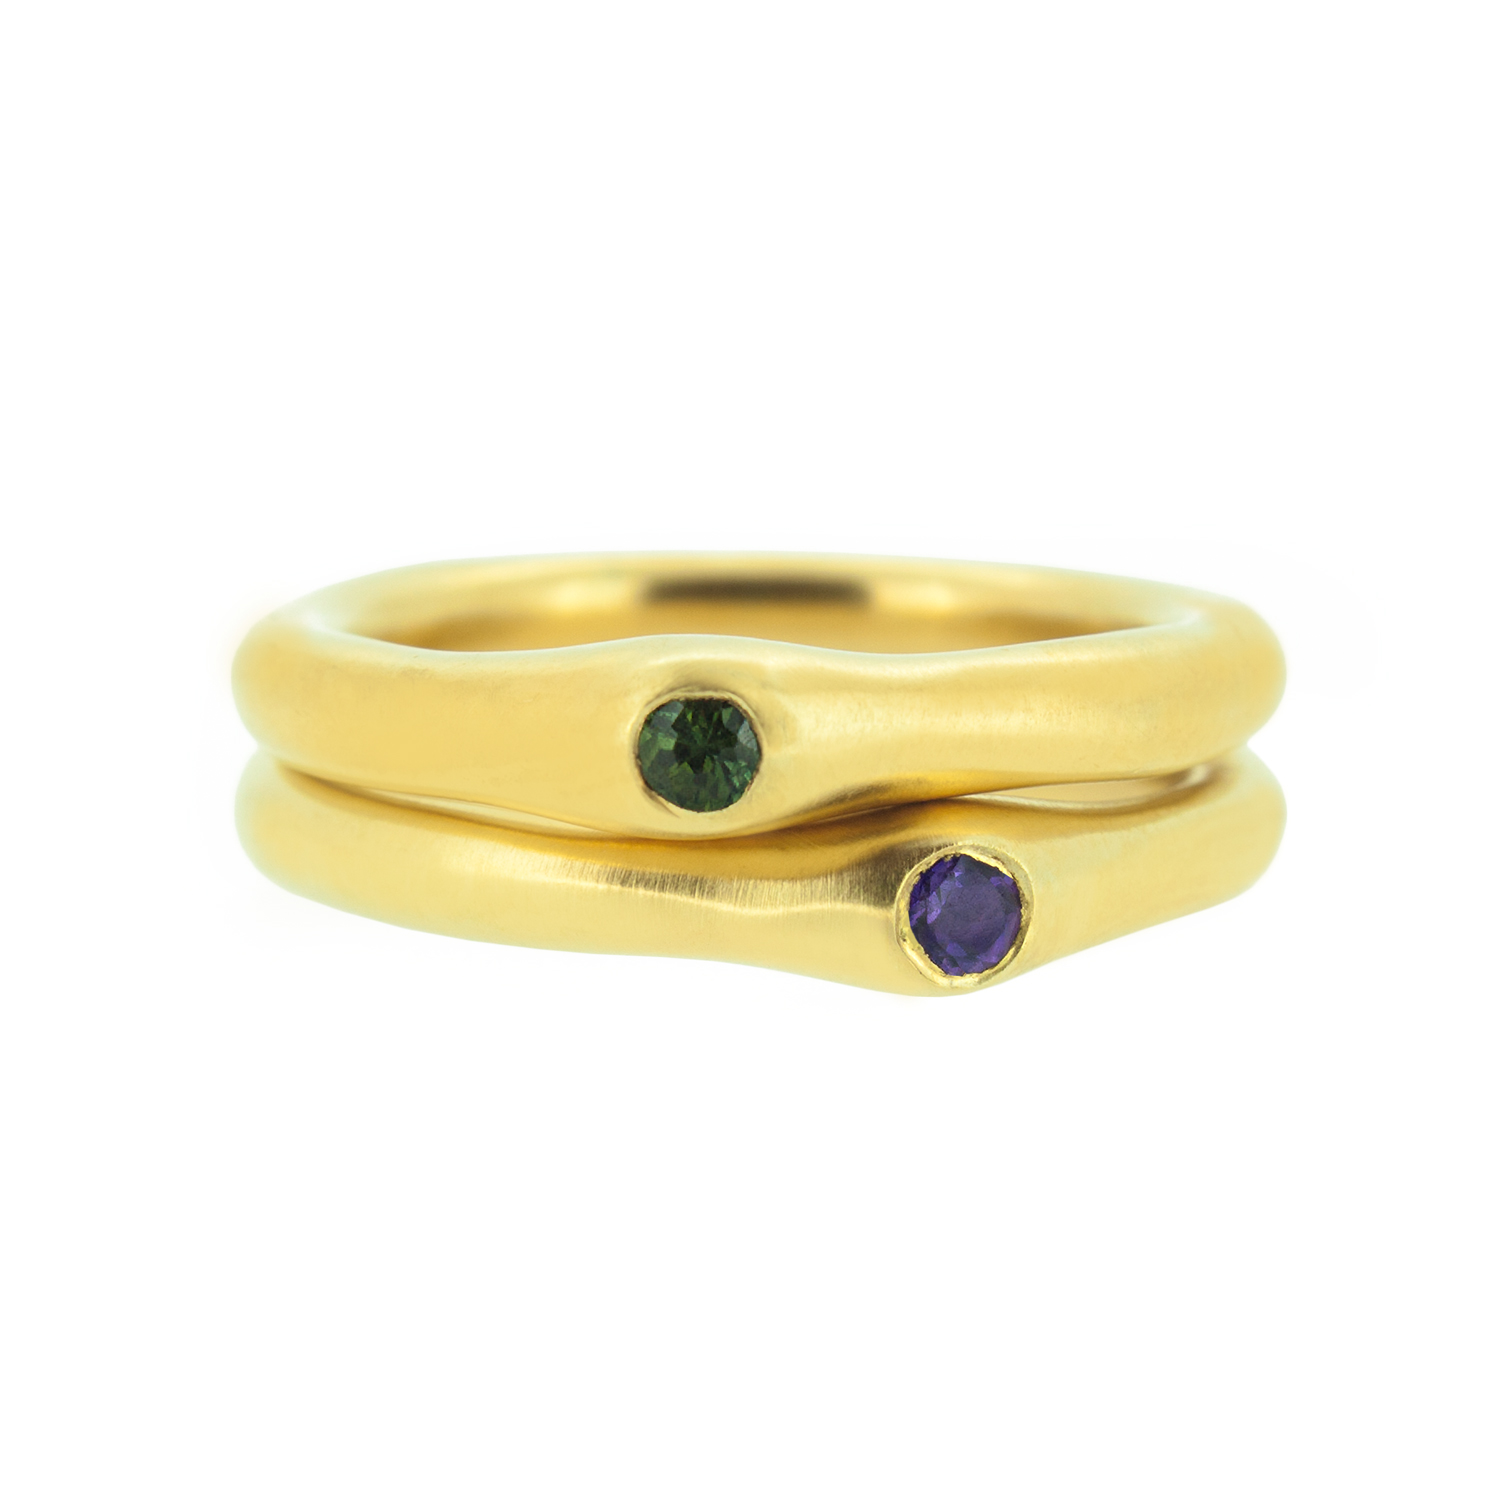 11. Mabel Hasell - Gold plated amethyst and tourmaline stack rings.jpg